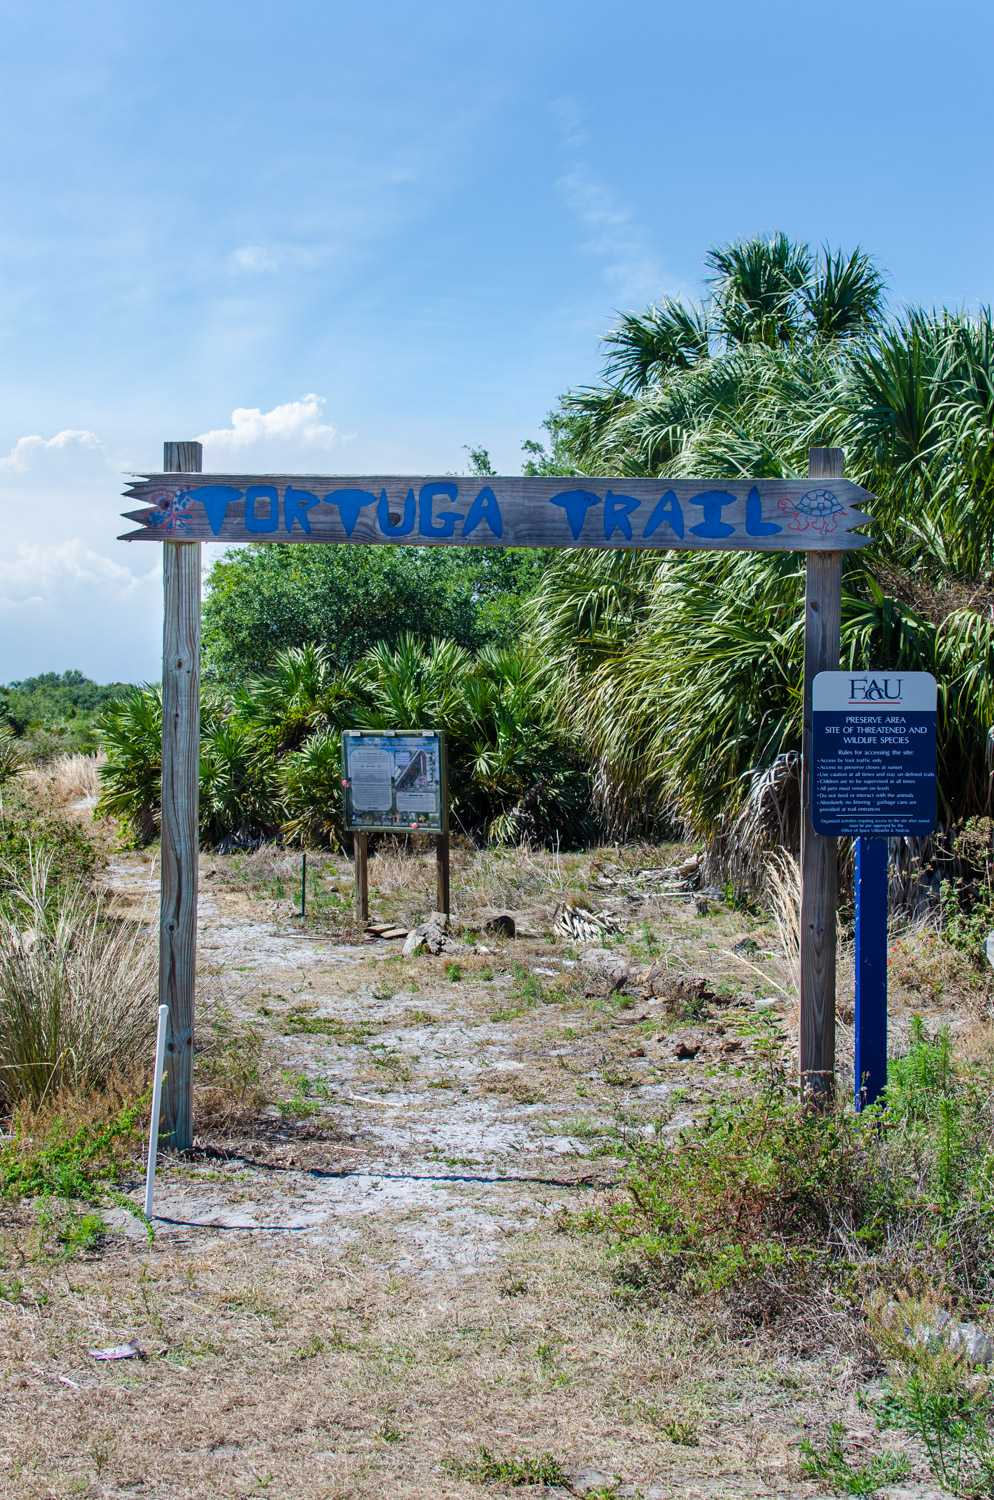 Entrance to the Tortuga Trail at FAU's Boca Campus.